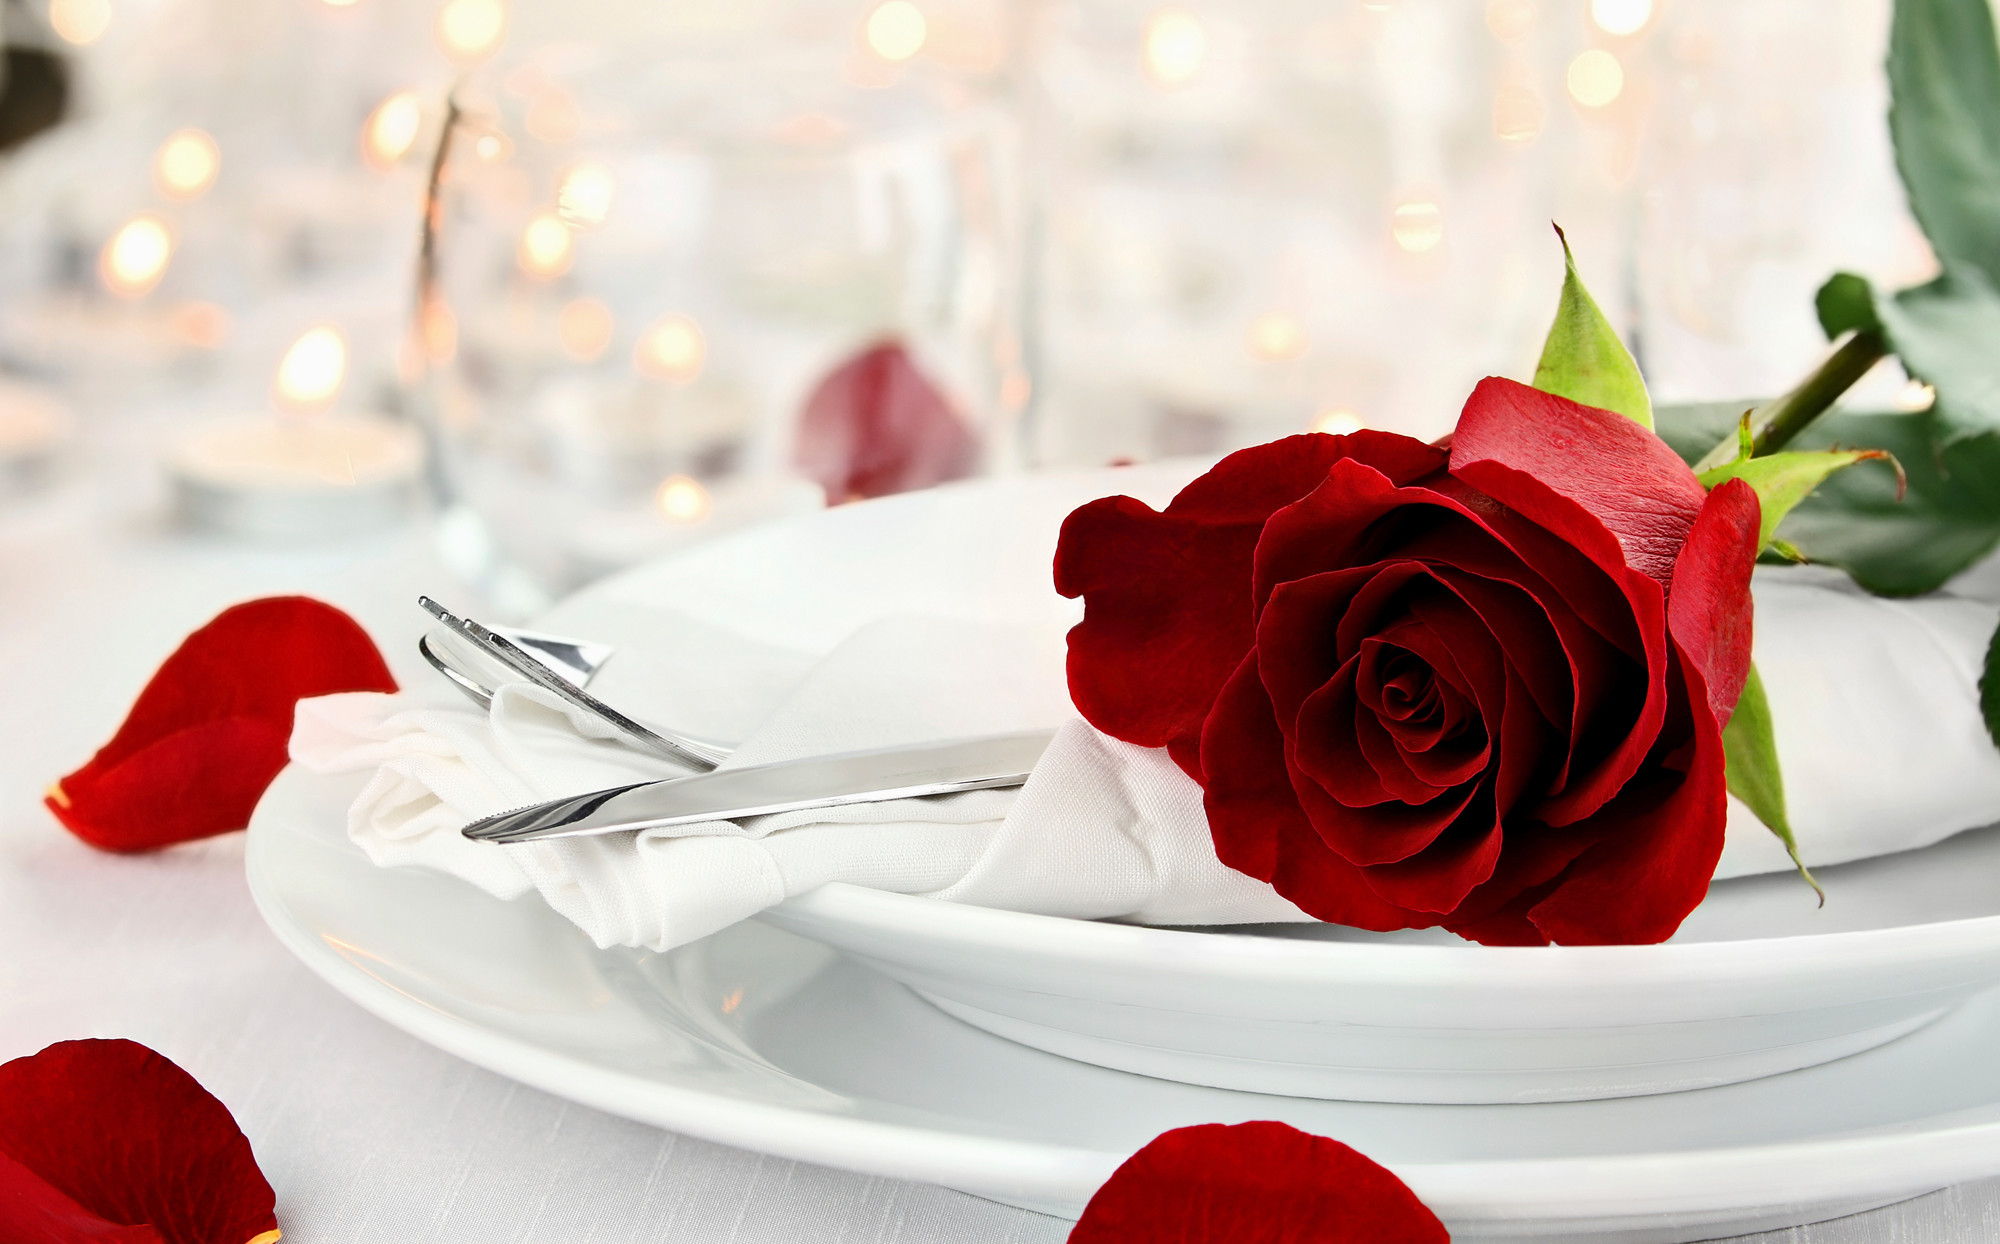 waterford marquis sweet memories vase of host a romantic dinner throughout e7d3c6ce4e0a8a225781e0ece39beb19